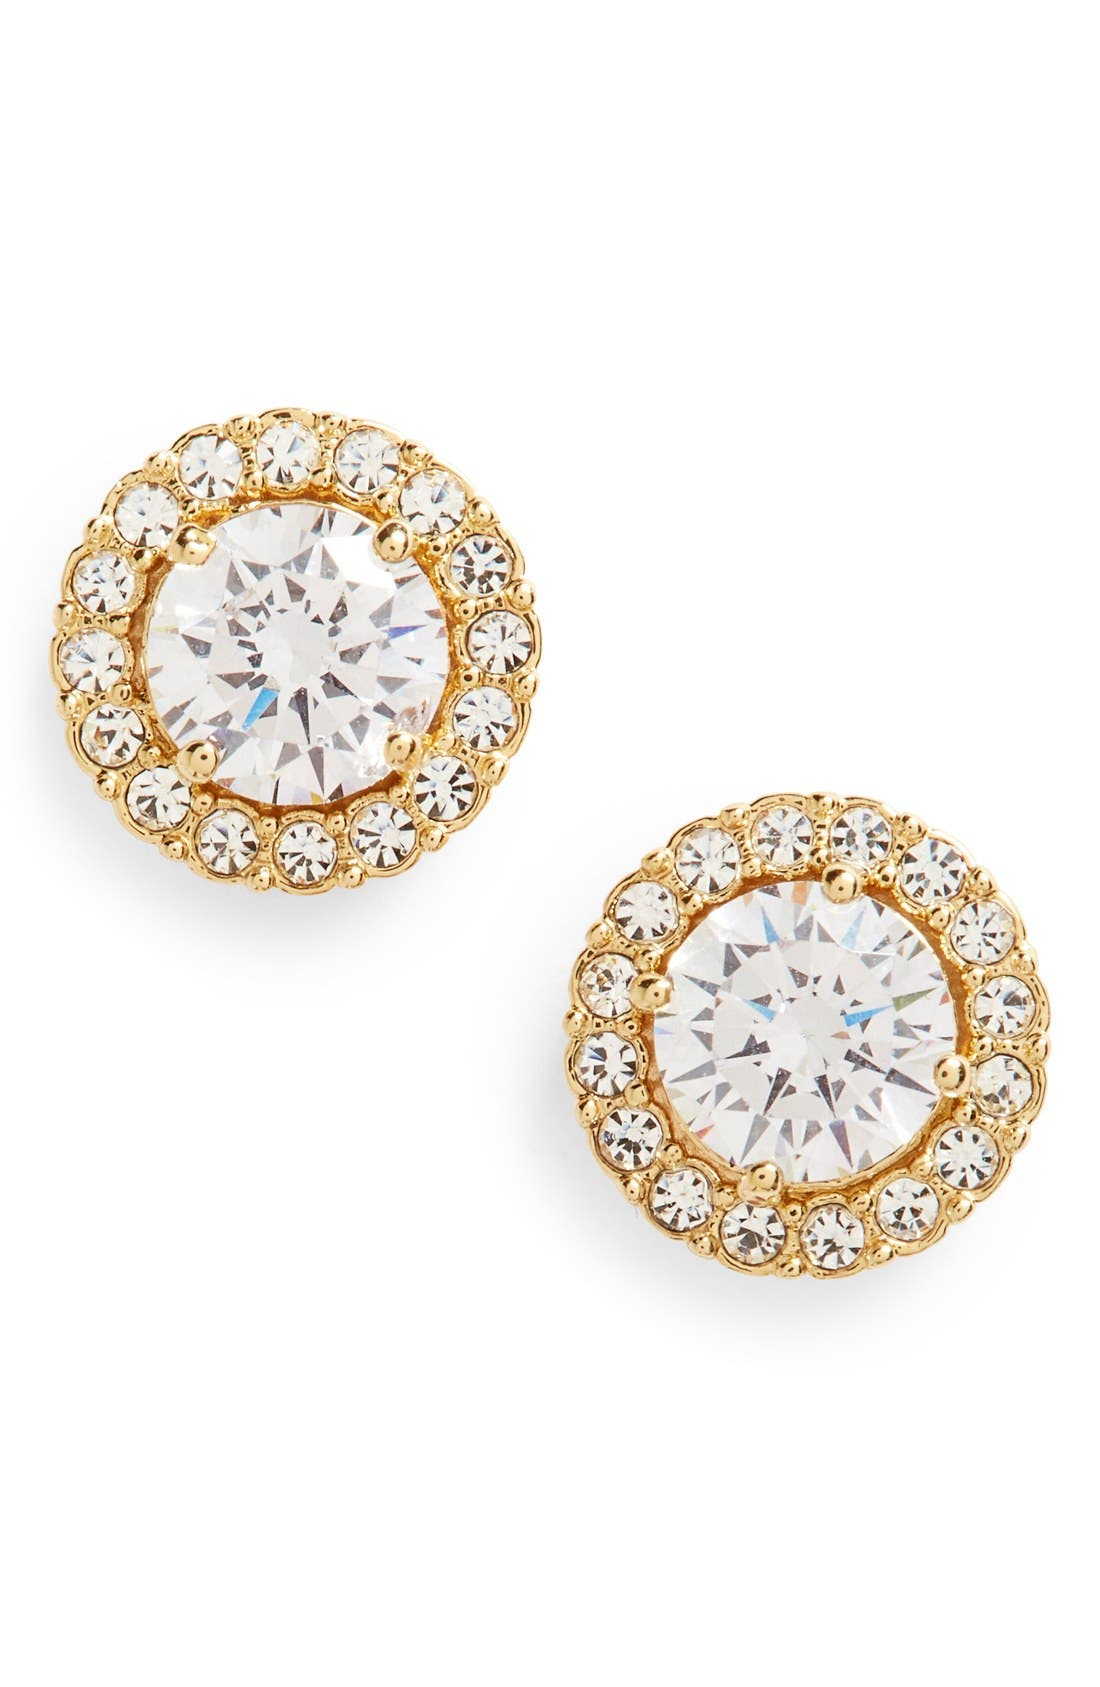 Round Cubic Zirconia Stud Earrings,                         Main,                         color, GOLD/ CLEAR CRYSTAL